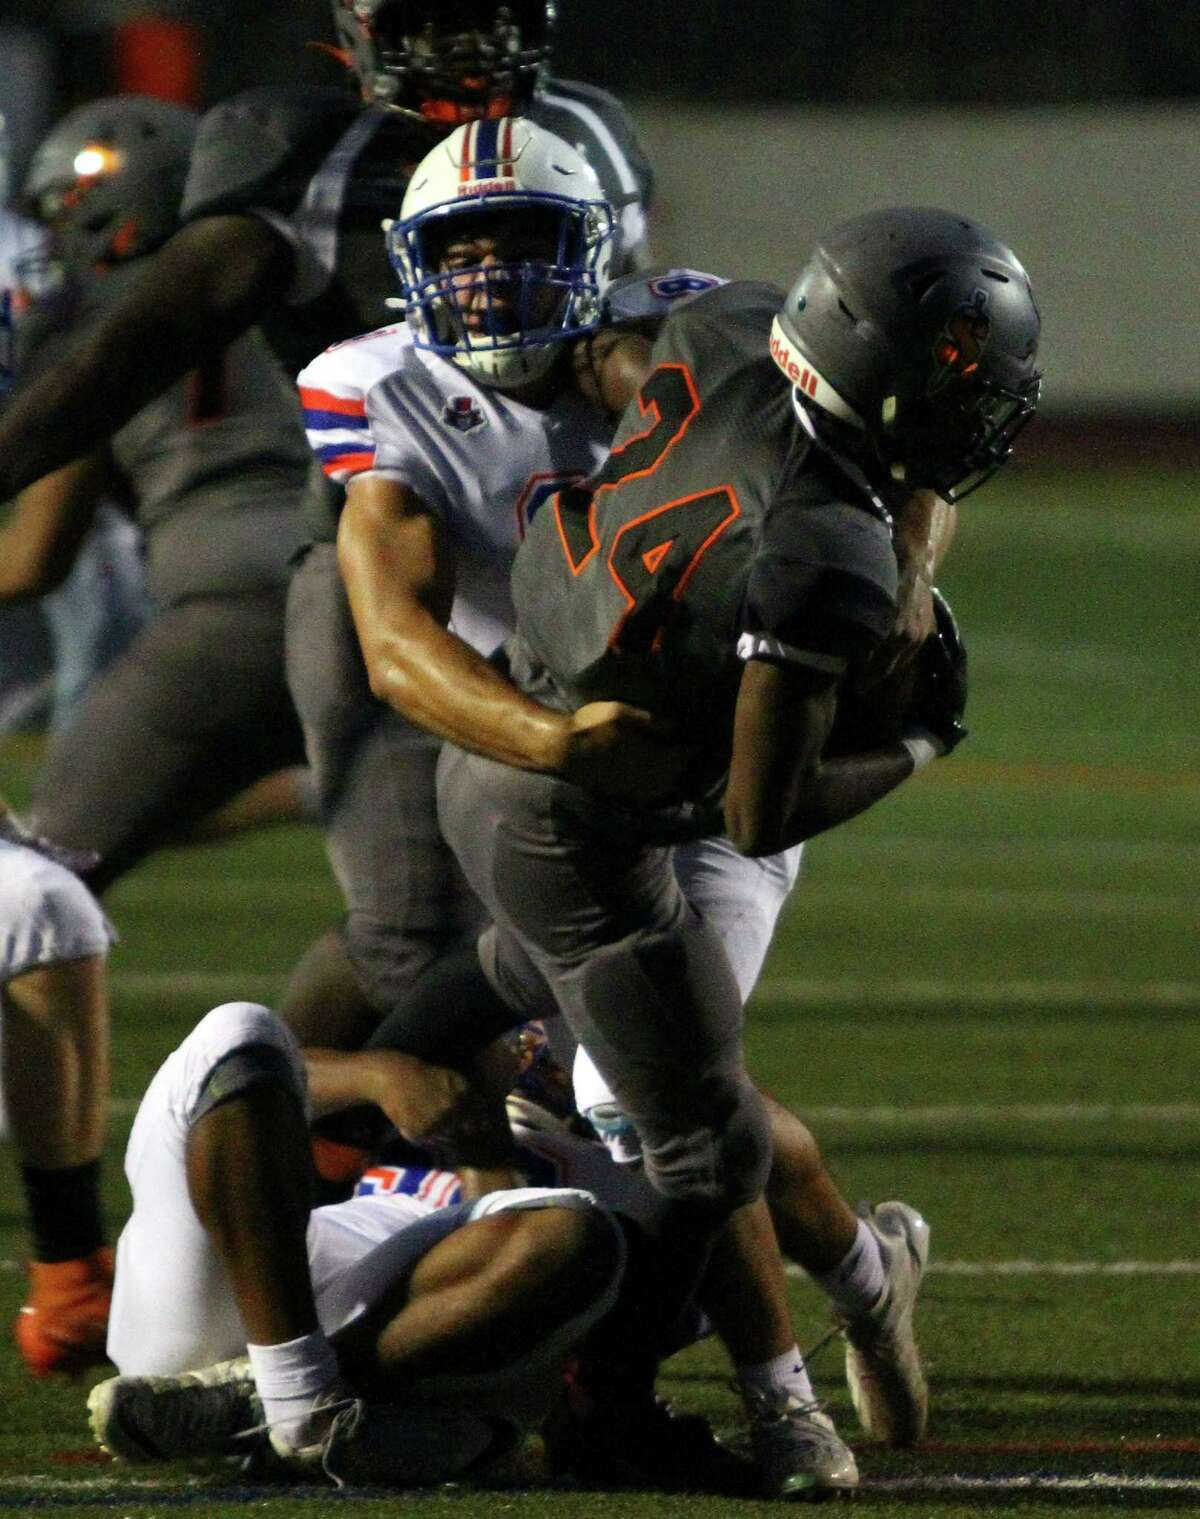 Danbury's Anthony Pellicone (8) tackles Stamford's Cam Jeane Pierre (24) during action on Friday.